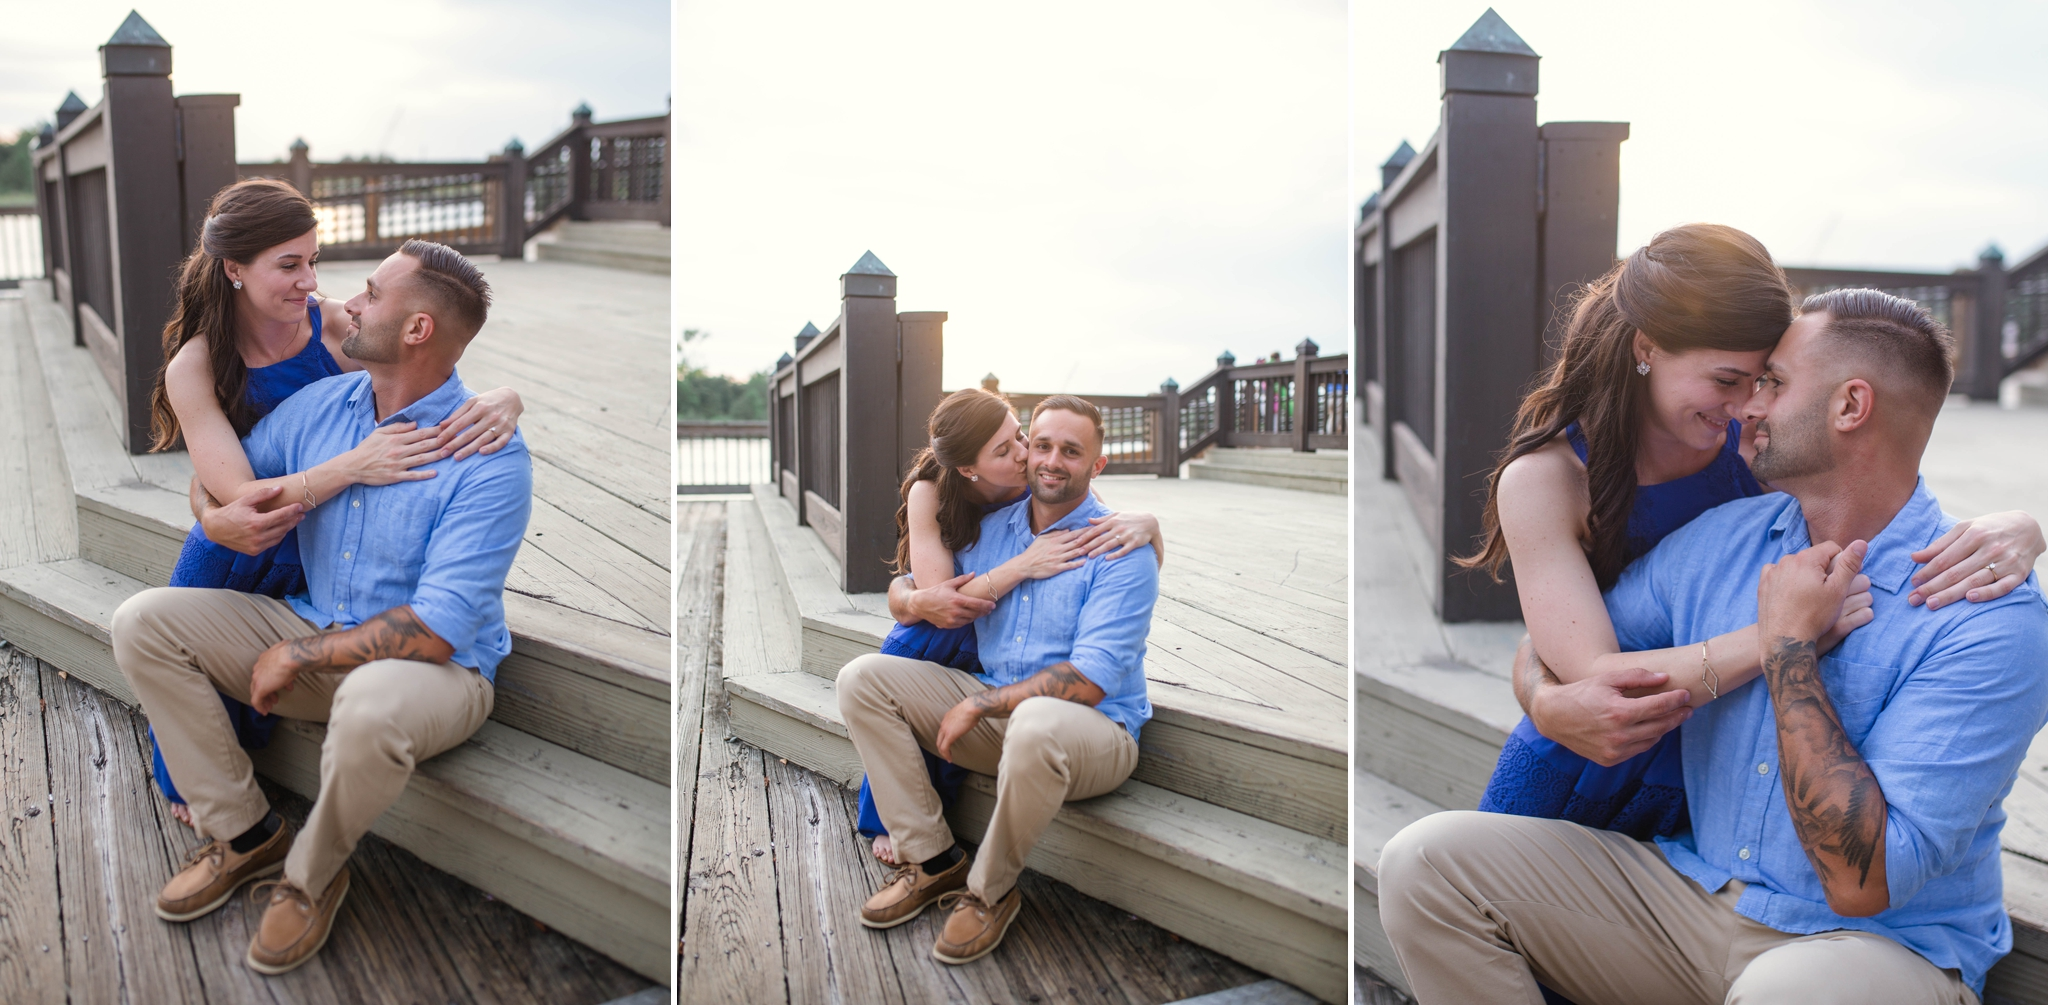 Alison + Thomas - Engagement Photography Session in Downtown Wilmington, NC - North Carolina Wedding Photographer